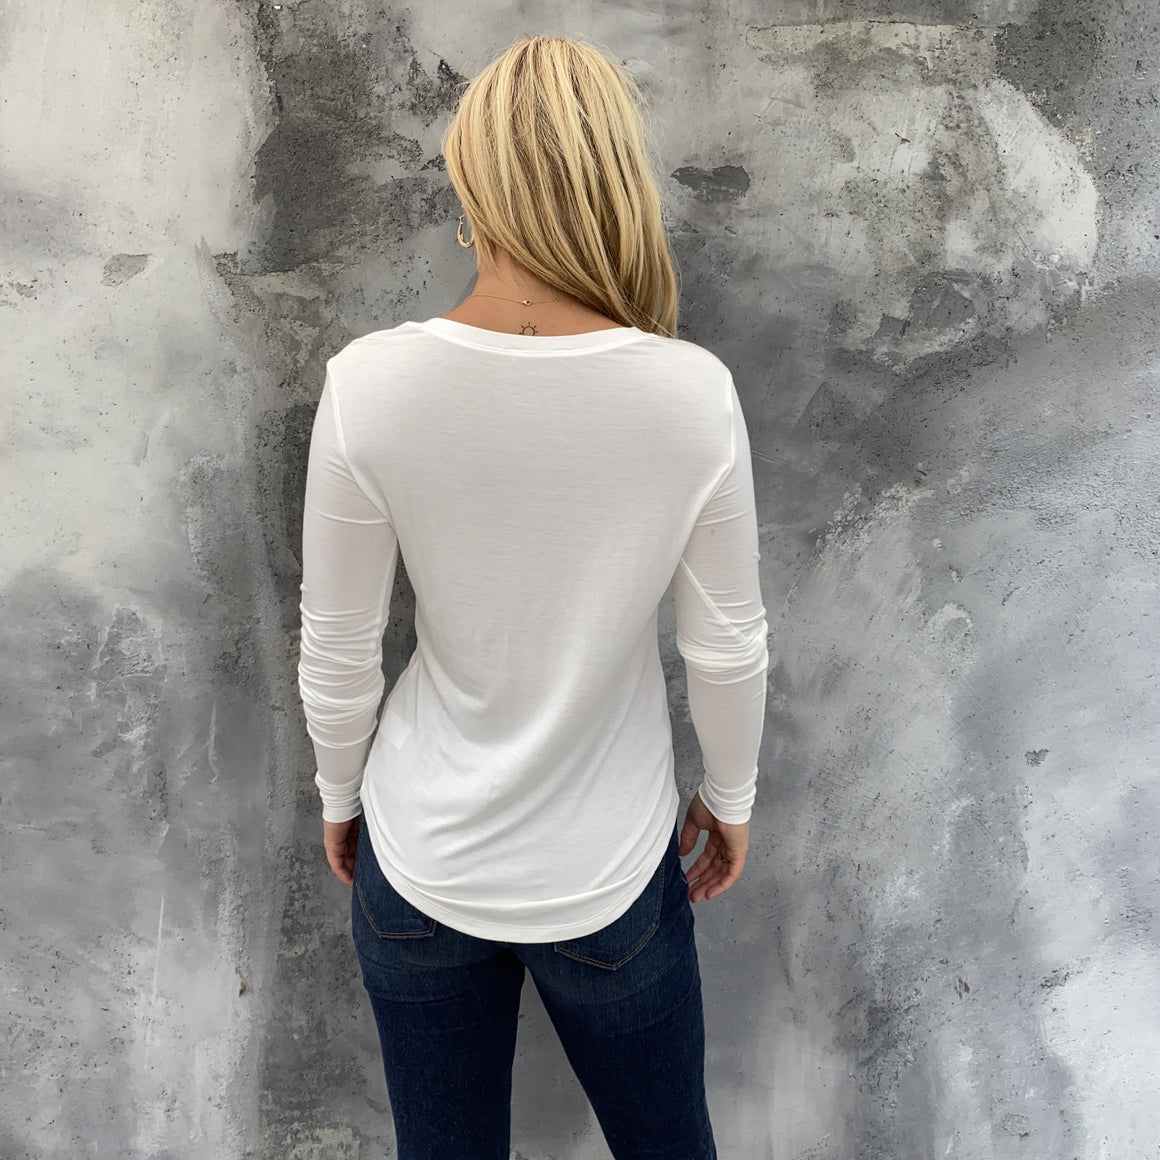 Layla Basic White Long Sleeve Top - Dainty Hooligan